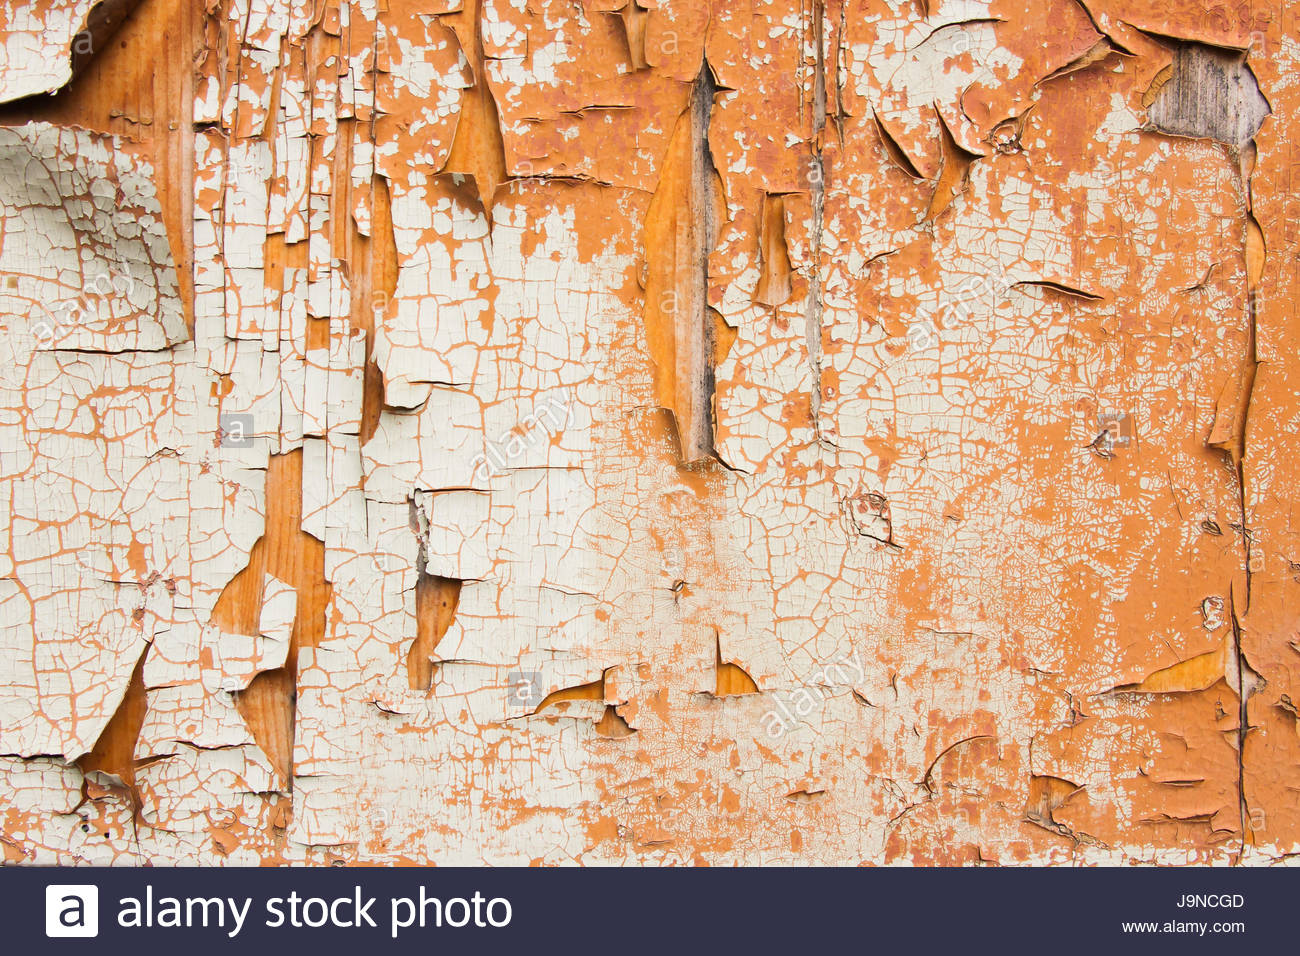 old wooden surface with a chappy paint background Stock Photo 1300x956